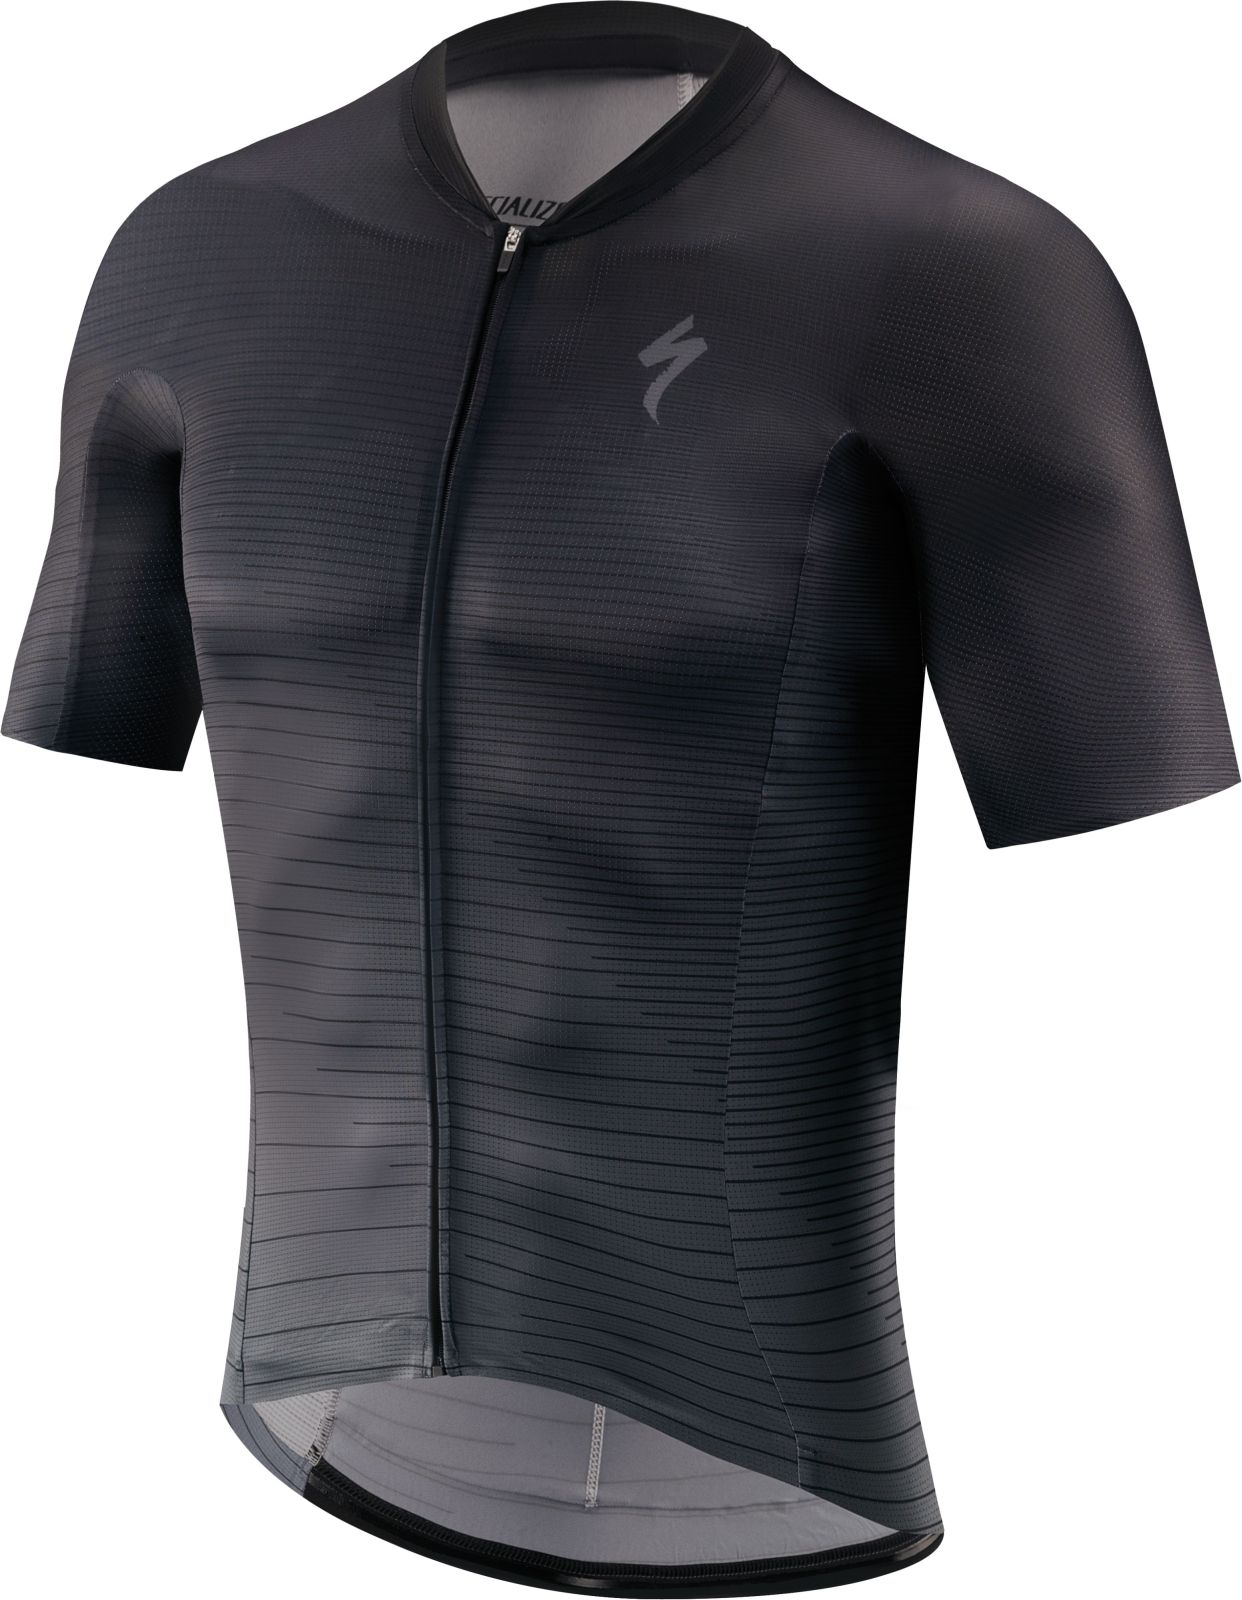 Specialized SL R Jersey SS - black/charcoal M